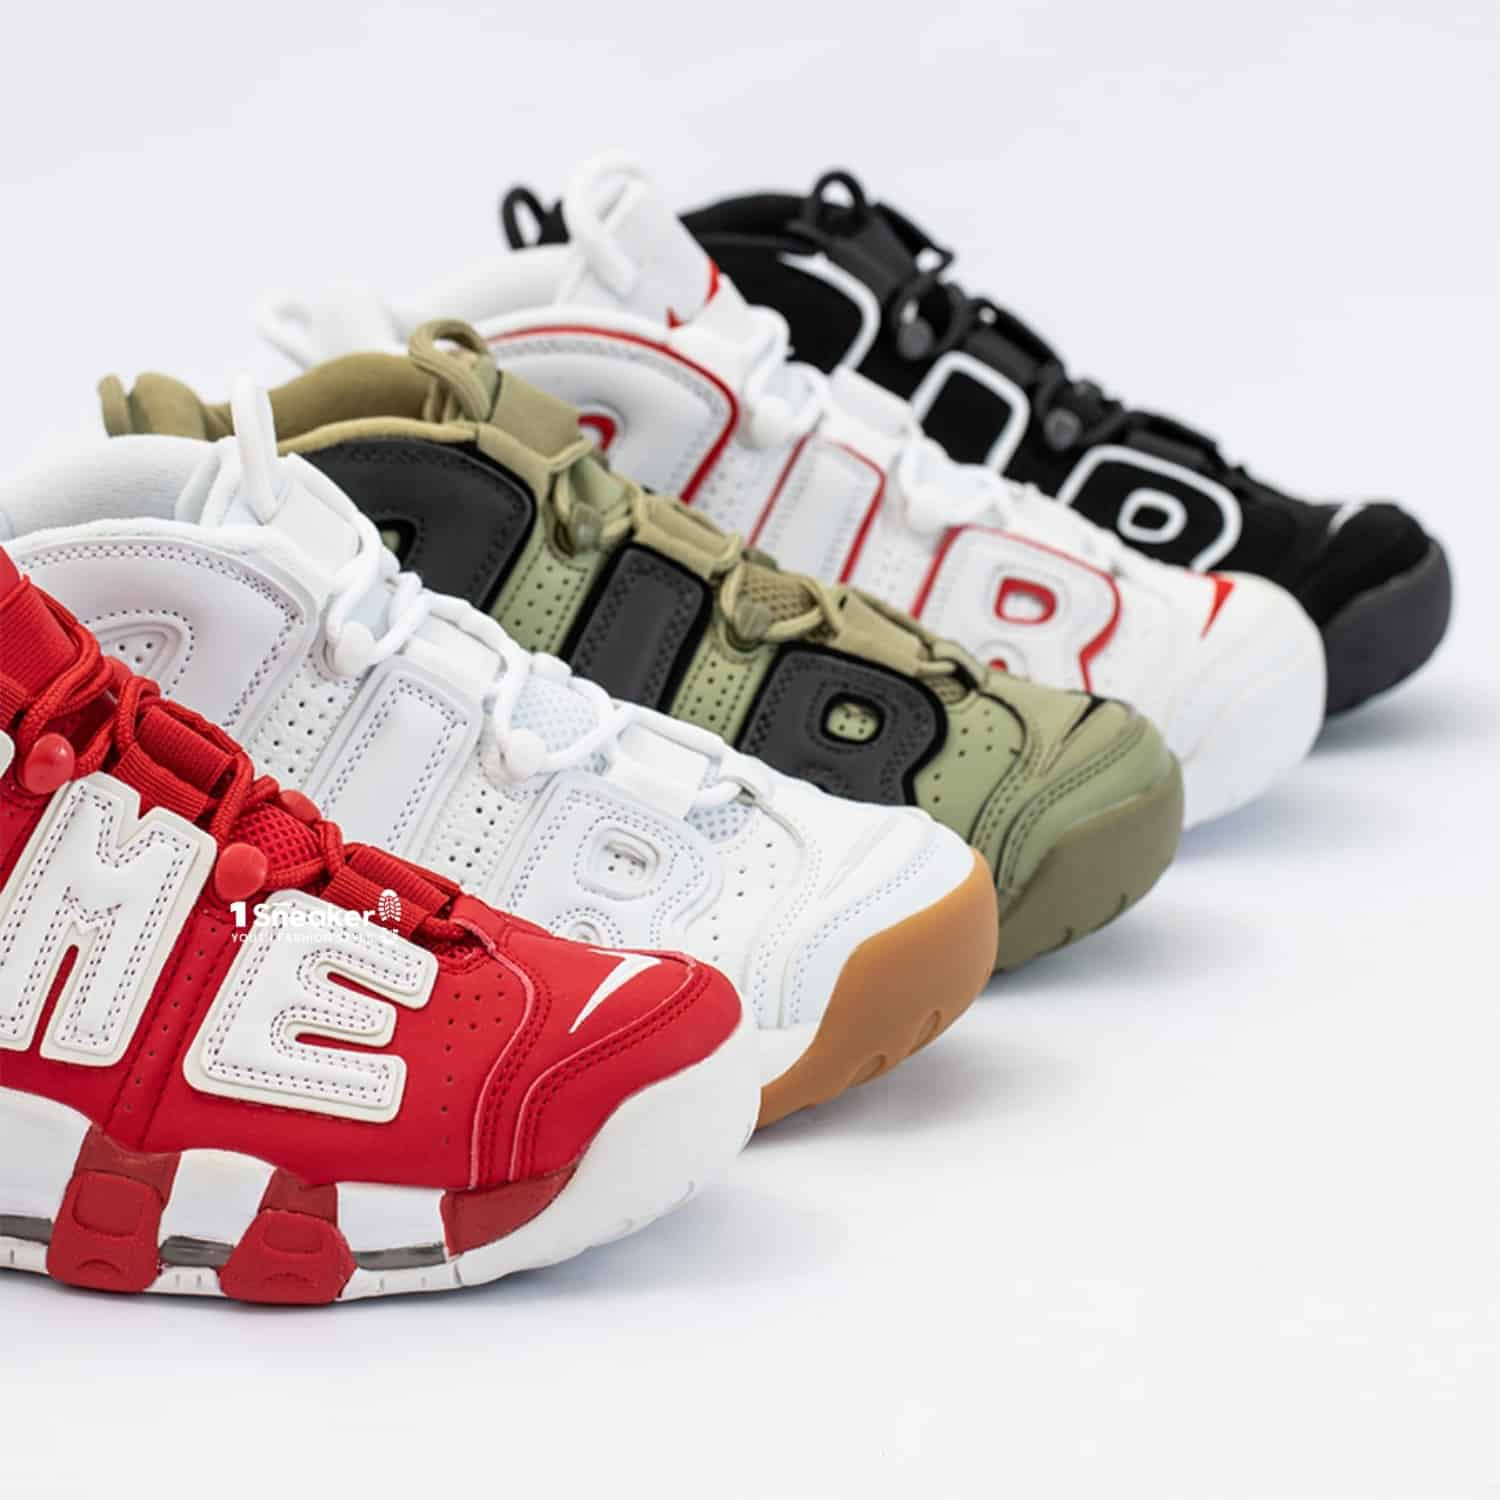 NIKE AIR MORE UPTEMPO x SUPREME RED 3